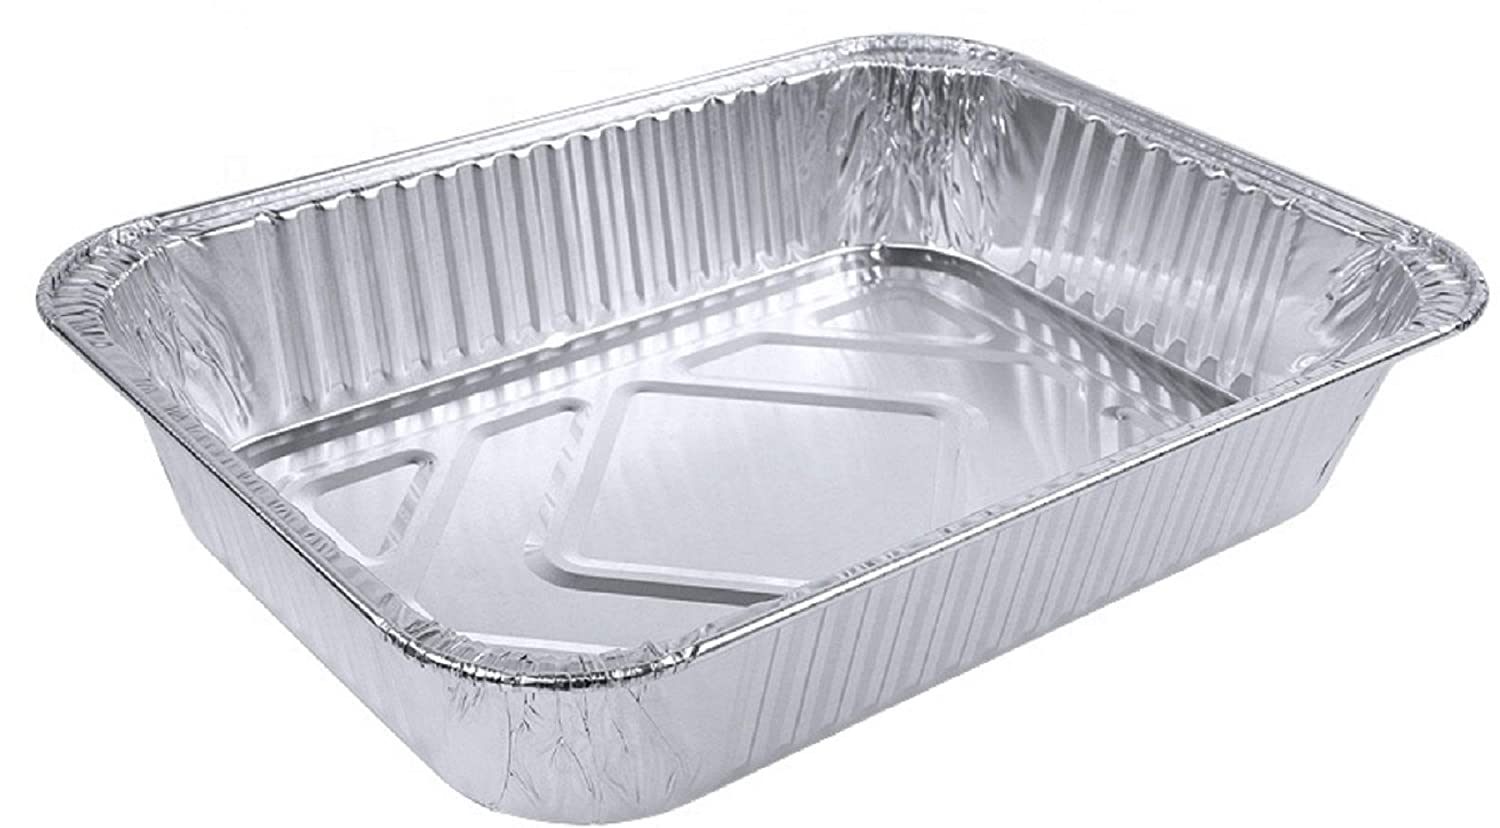 Aluminum Foil Grill Drip Pans Set of 15 Pack-Disposable Steam Table Deep Trays-Meal Cooking,Baking,Roasting,Broiling,Heating Buffet Trays Tin Pans-Half Size Chafing Pans 9 x 6 x 2 inch